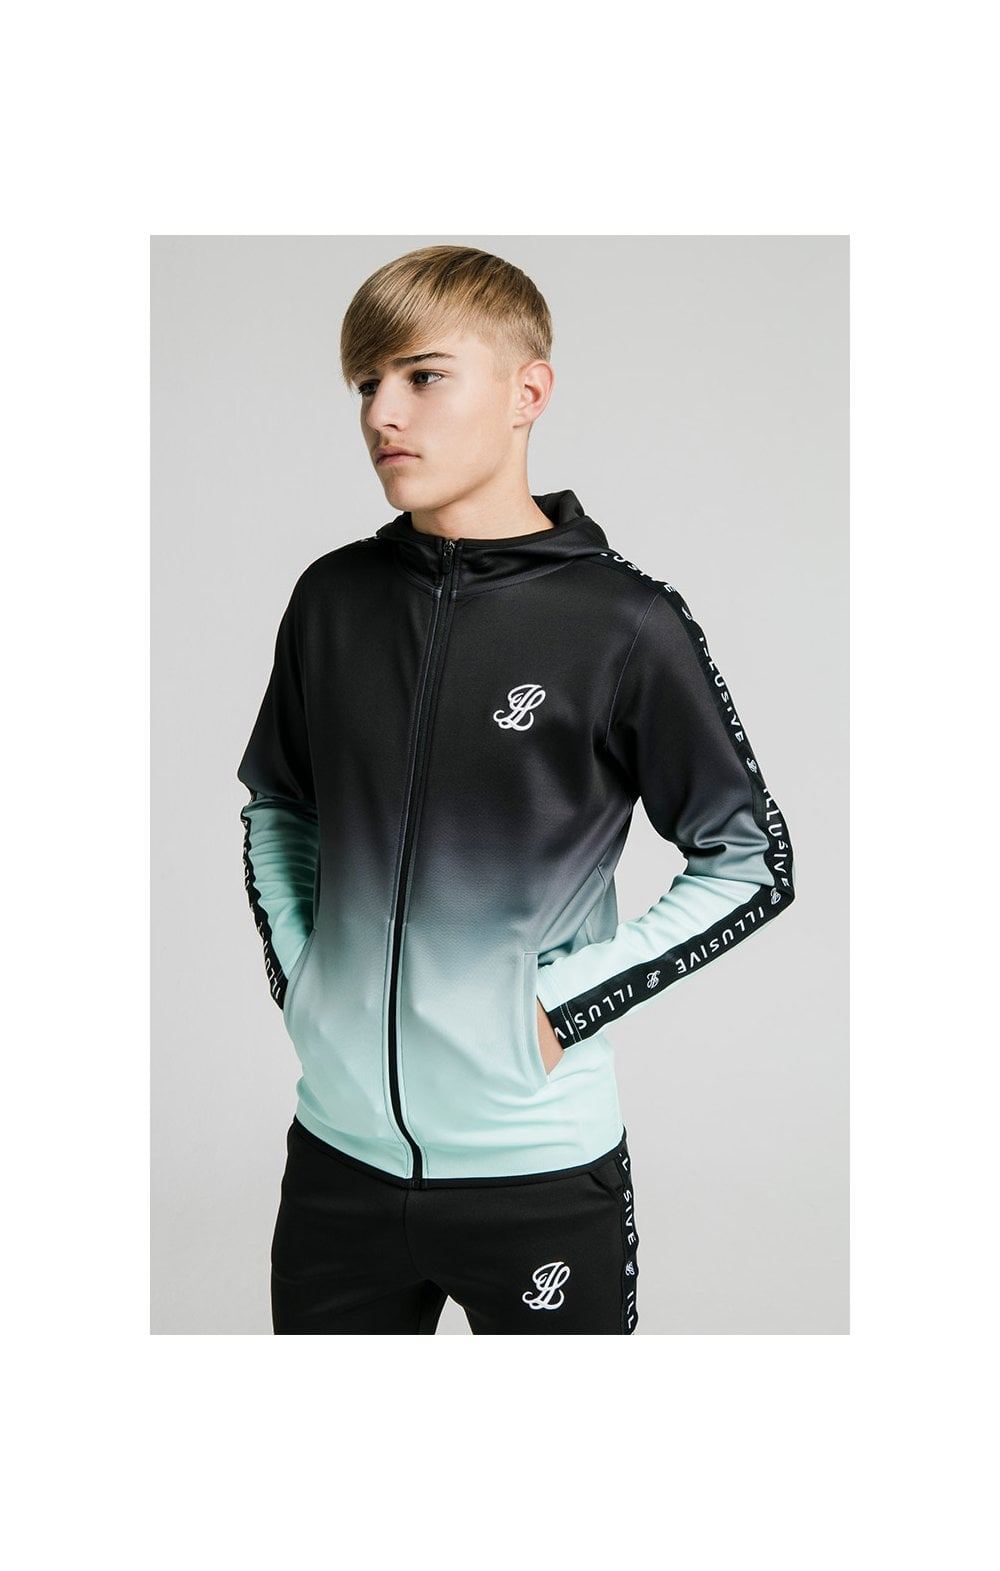 Illusive London Fade Scope Zip Through Hoodie - Black & Mint